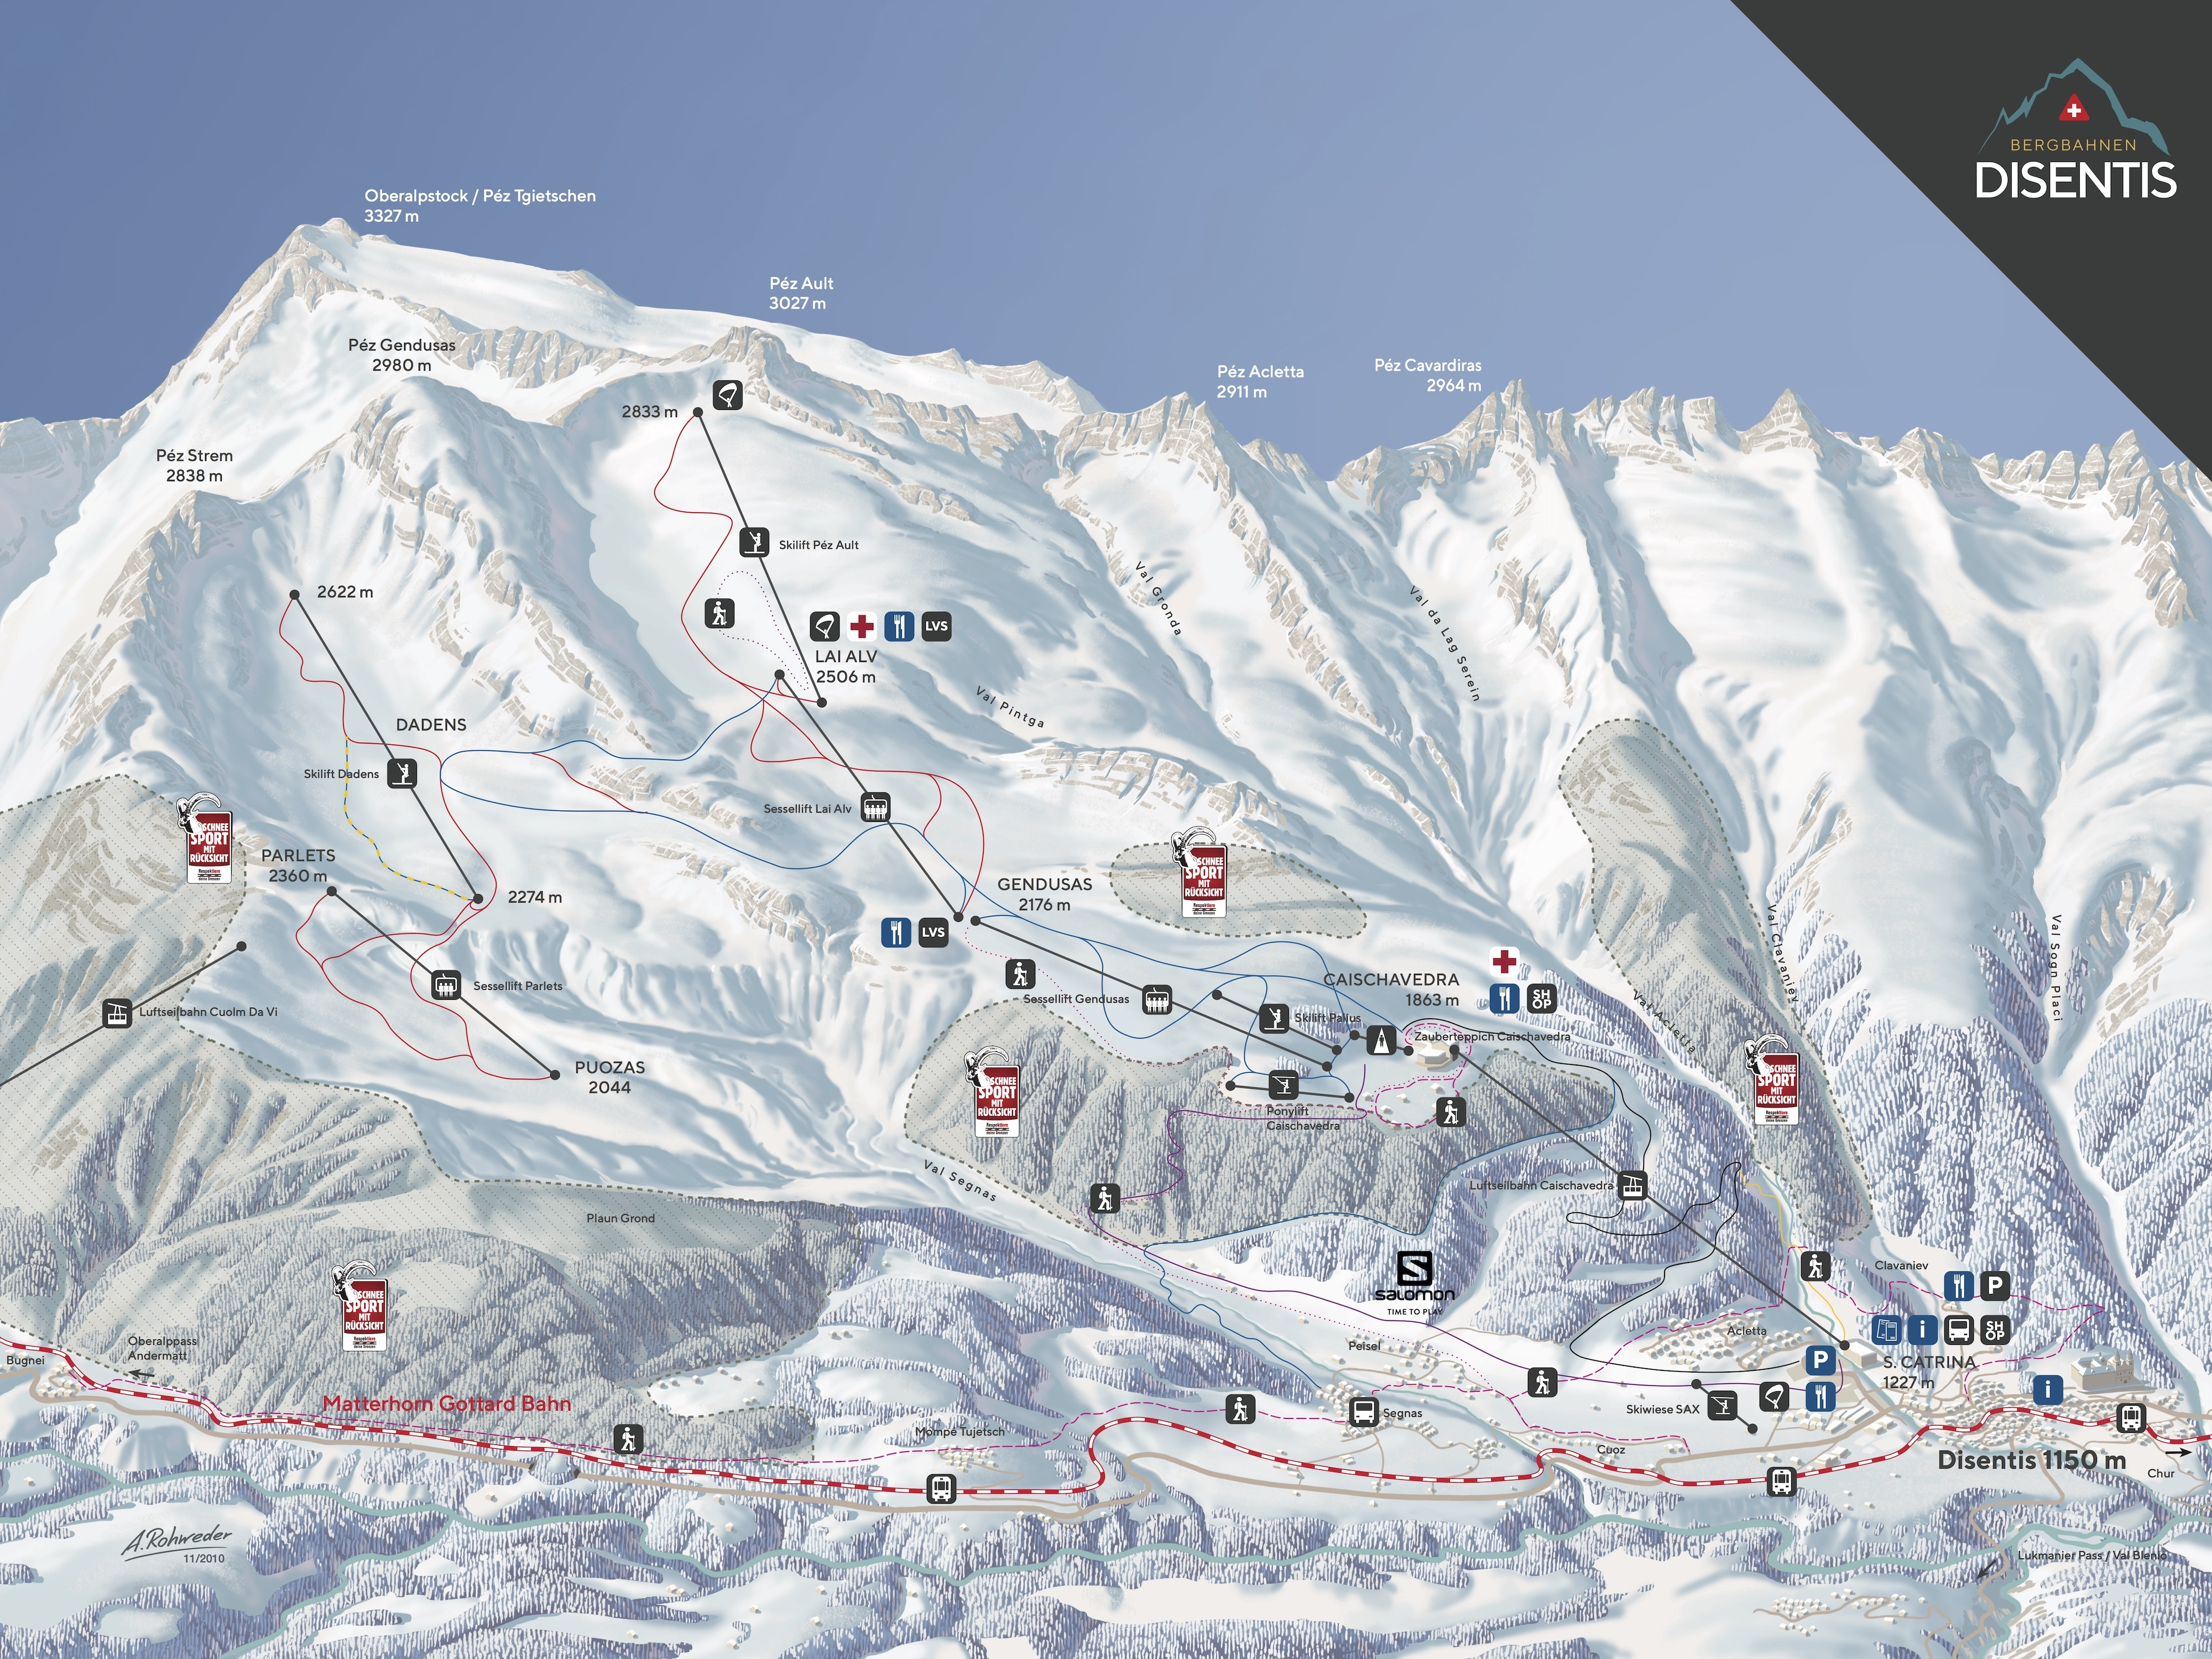 Disentis Piste / Trail Map